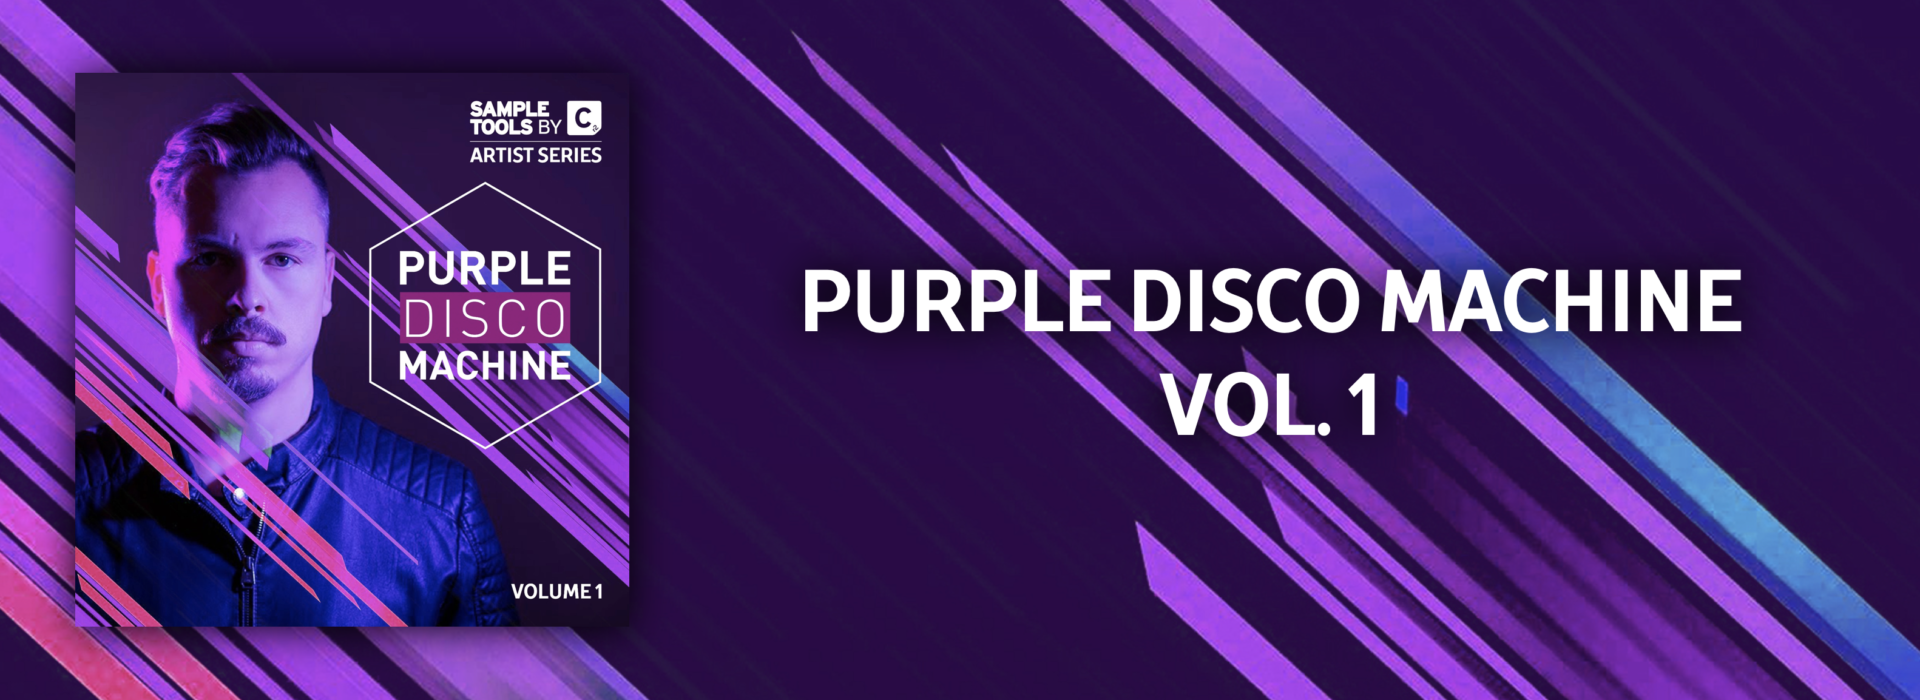 NEW RELEASE: Purple Disco Machine Vol. 1